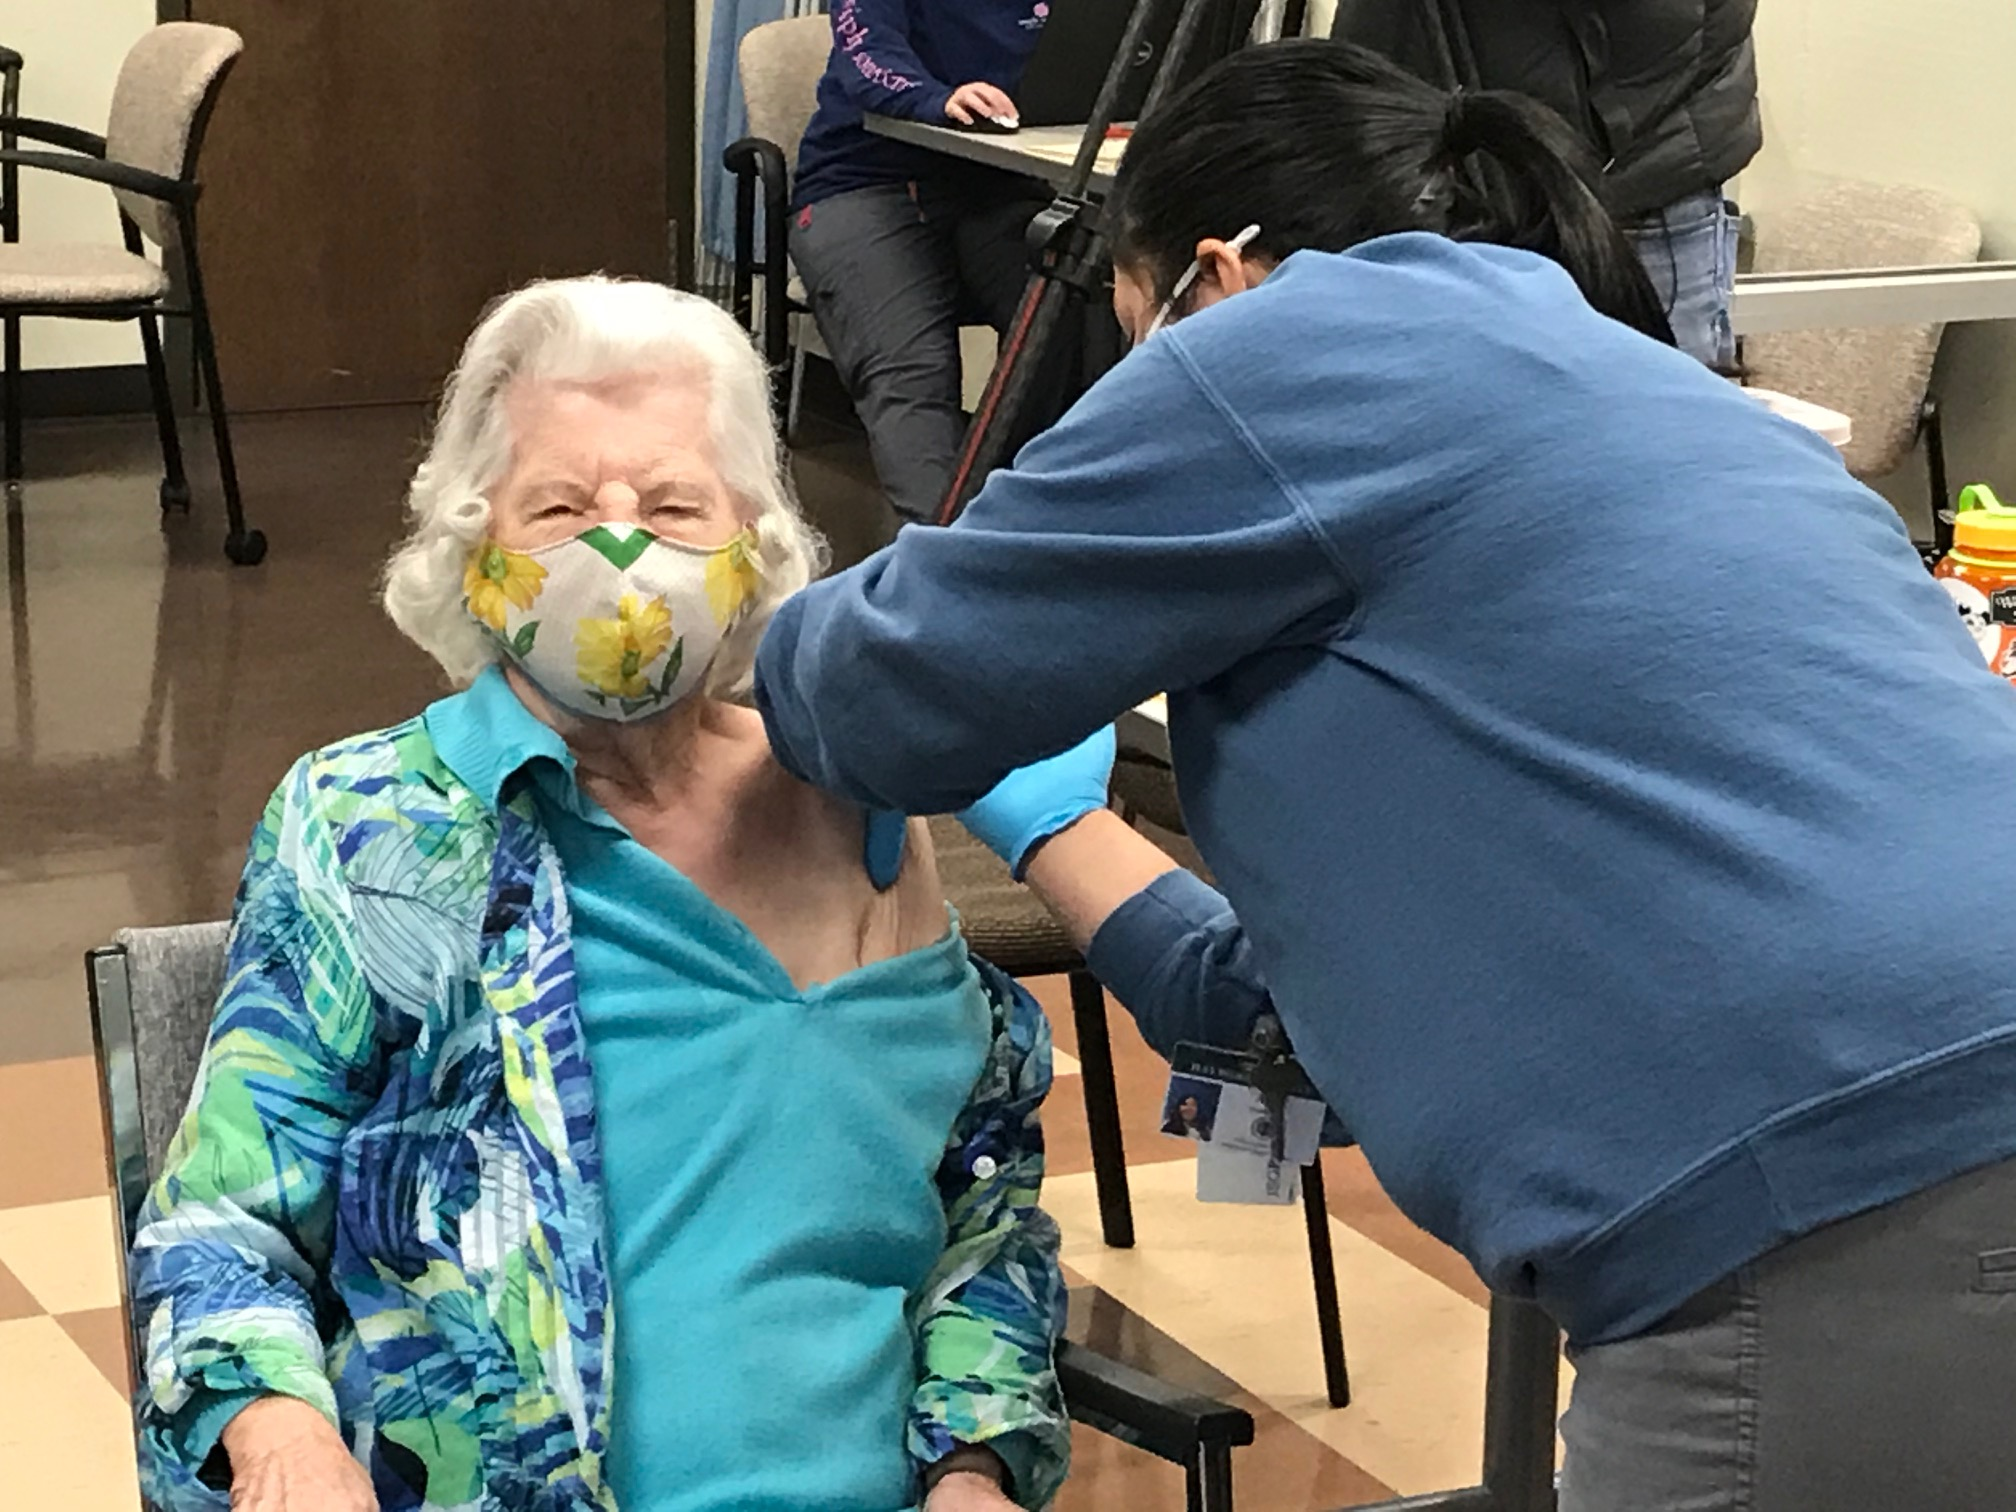 98-year-old Sara Brown received her first dose of the COVID-19 vaccine. (Photo credit: WLOS)